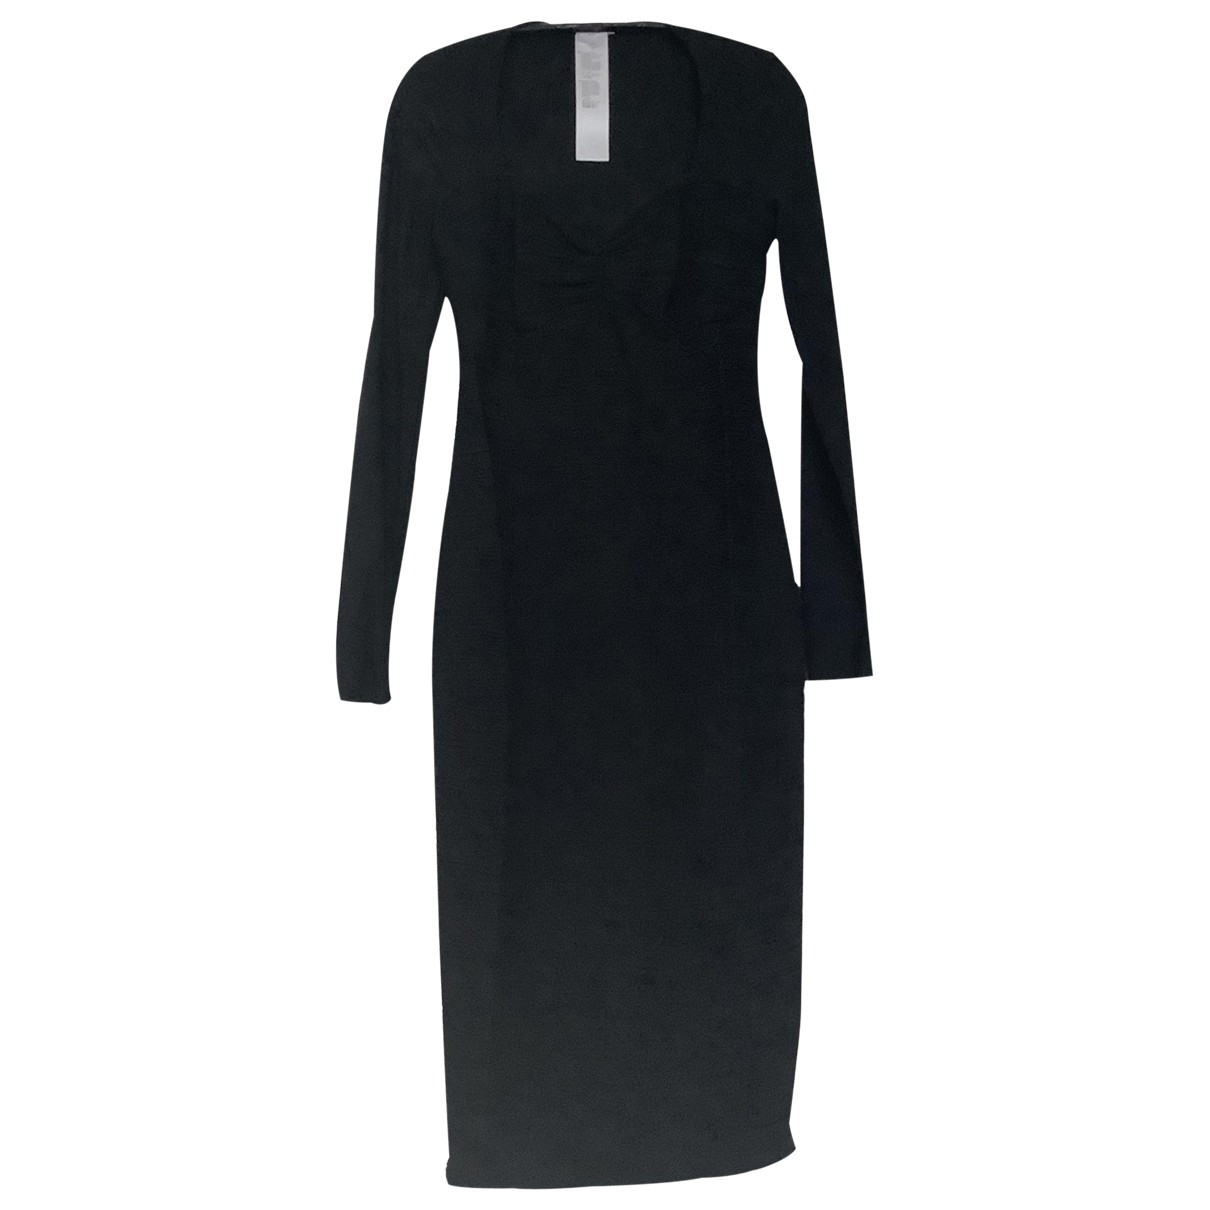 Wolford \N Black dress for Women XS International